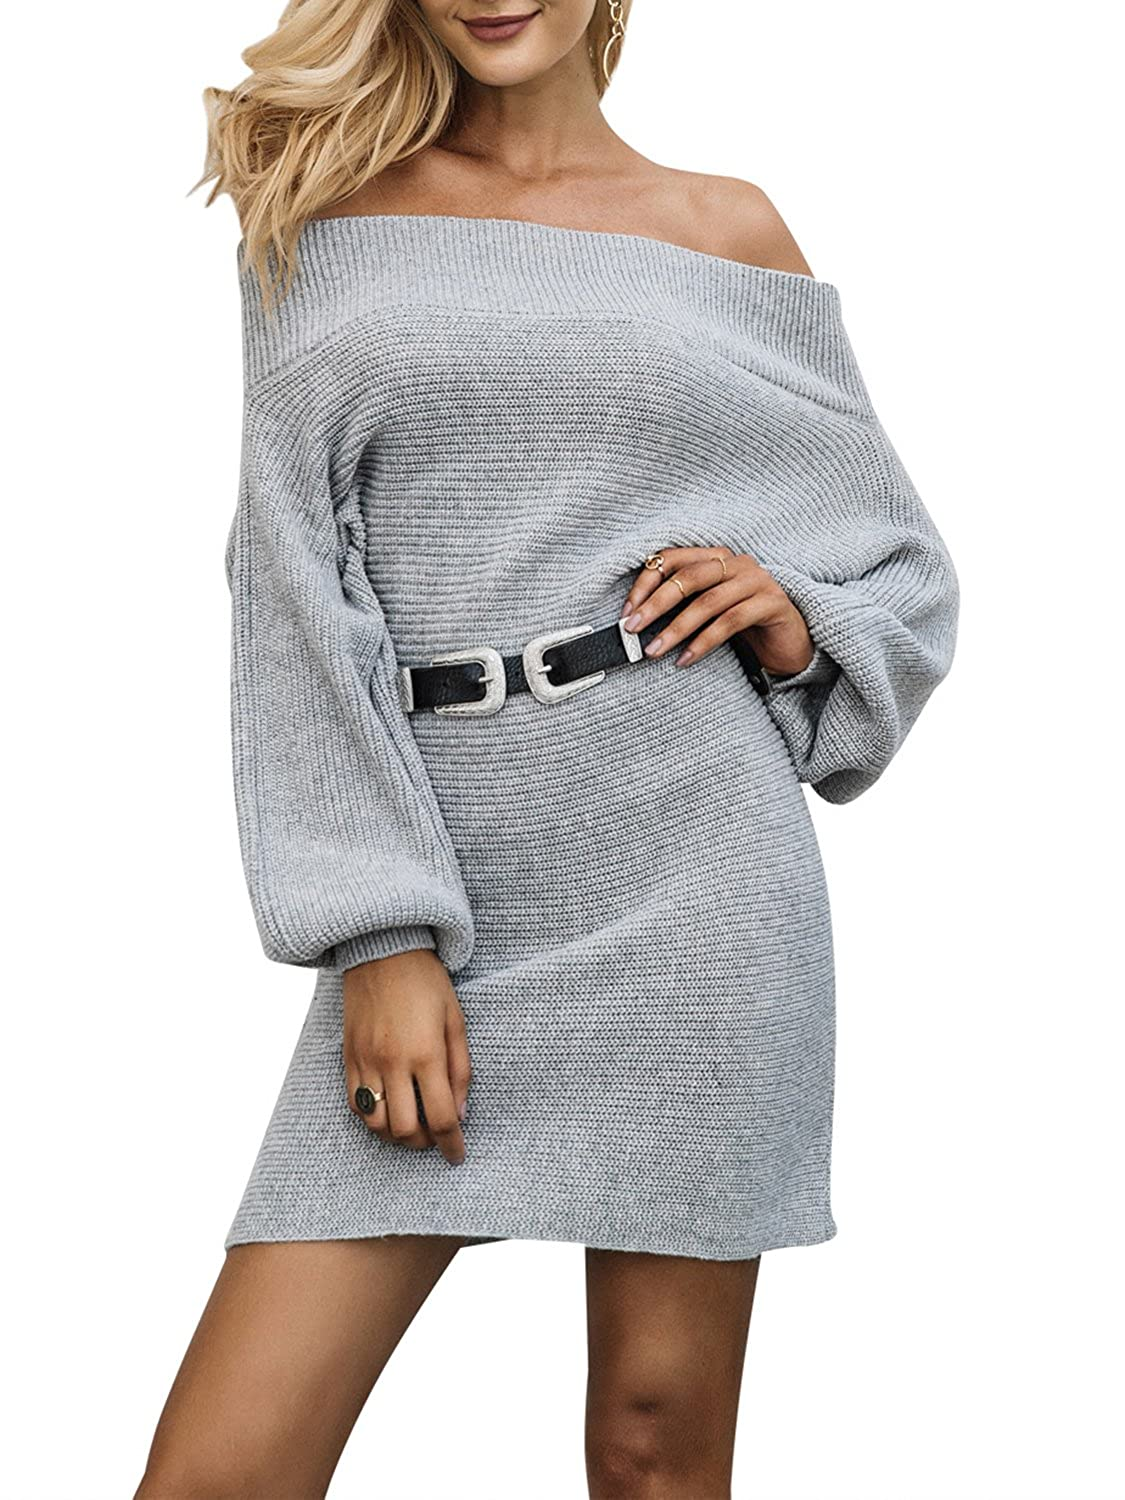 8b948e33399 Glamaker Women s Long Sleeves Loose Pullover Knit Dress Off Shoulder  Knitted Sweater Dress Gray at Amazon Women s Clothing store